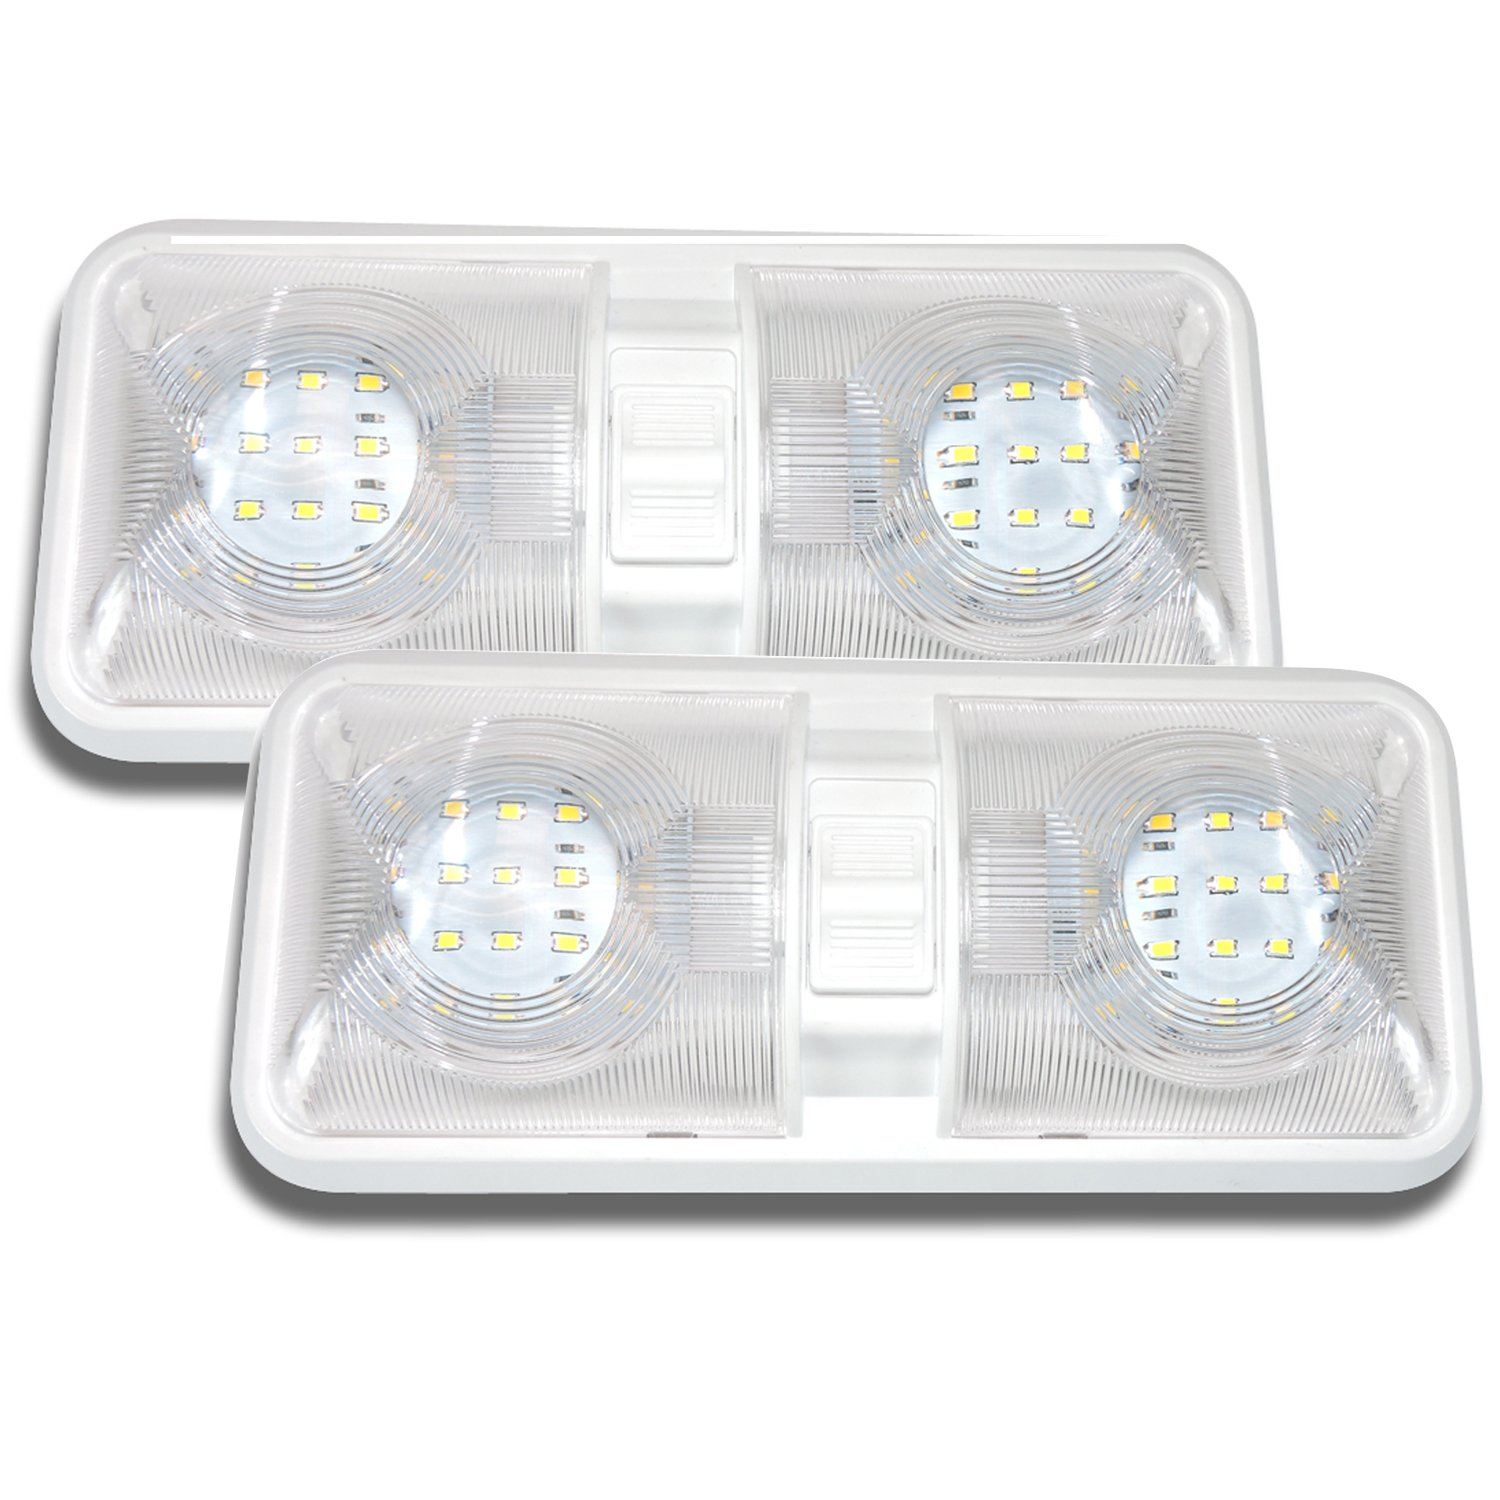 2-Pack Leisure LED RV LED Ceiling Double Dome Light Fixture with Built in Dimmer Interior Lighting for Car//RV//Trailer//Camper//Boat 12V Natural White 4000-4500K 650 Lumen